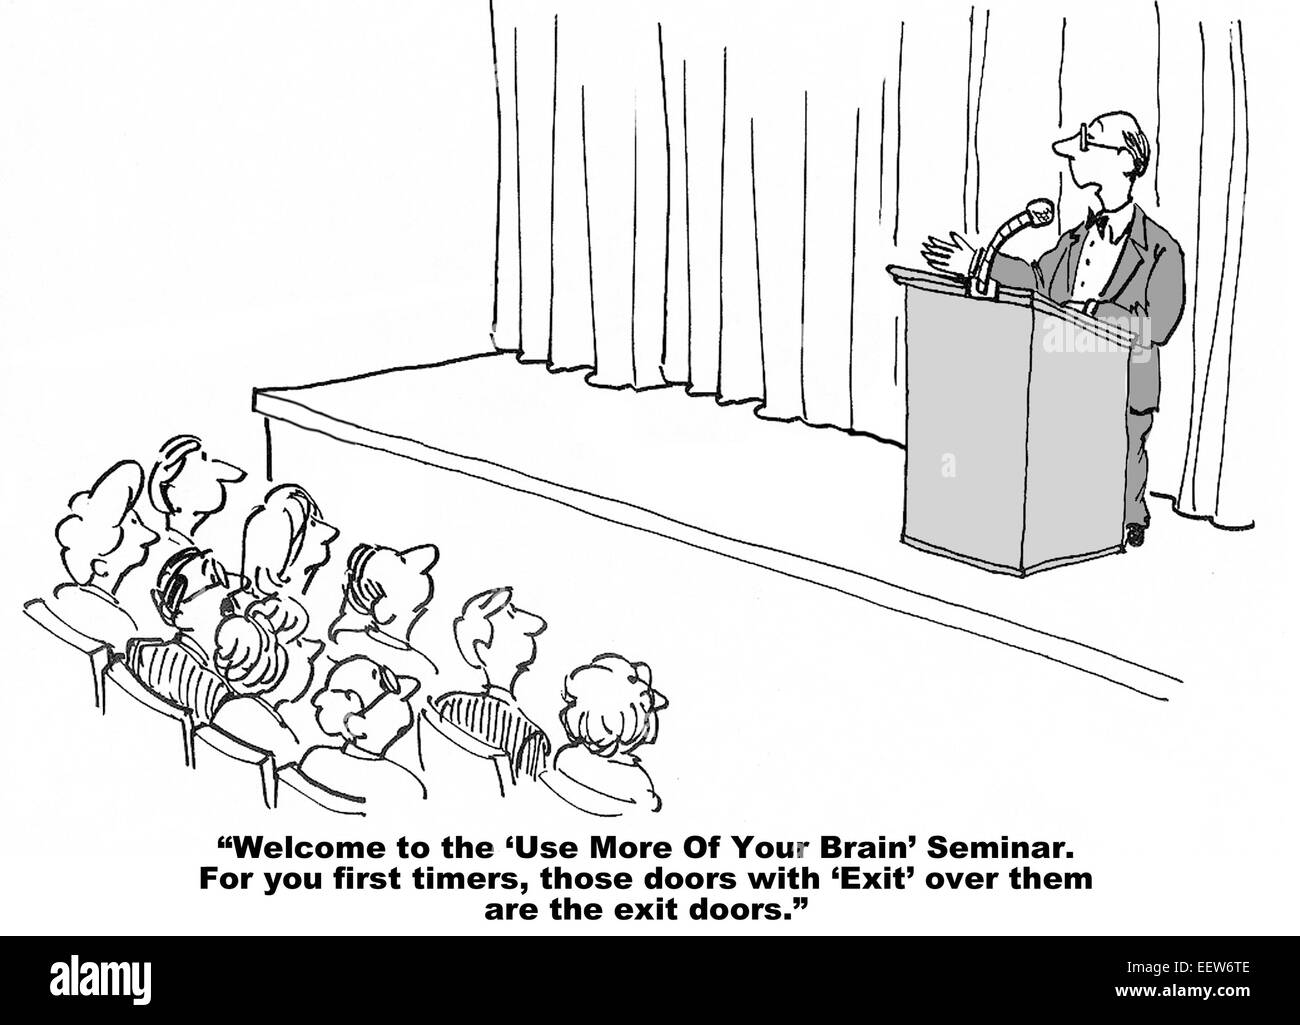 Cartoon of a businessman leading a seminar on 'use more of your brain'. - Stock Image